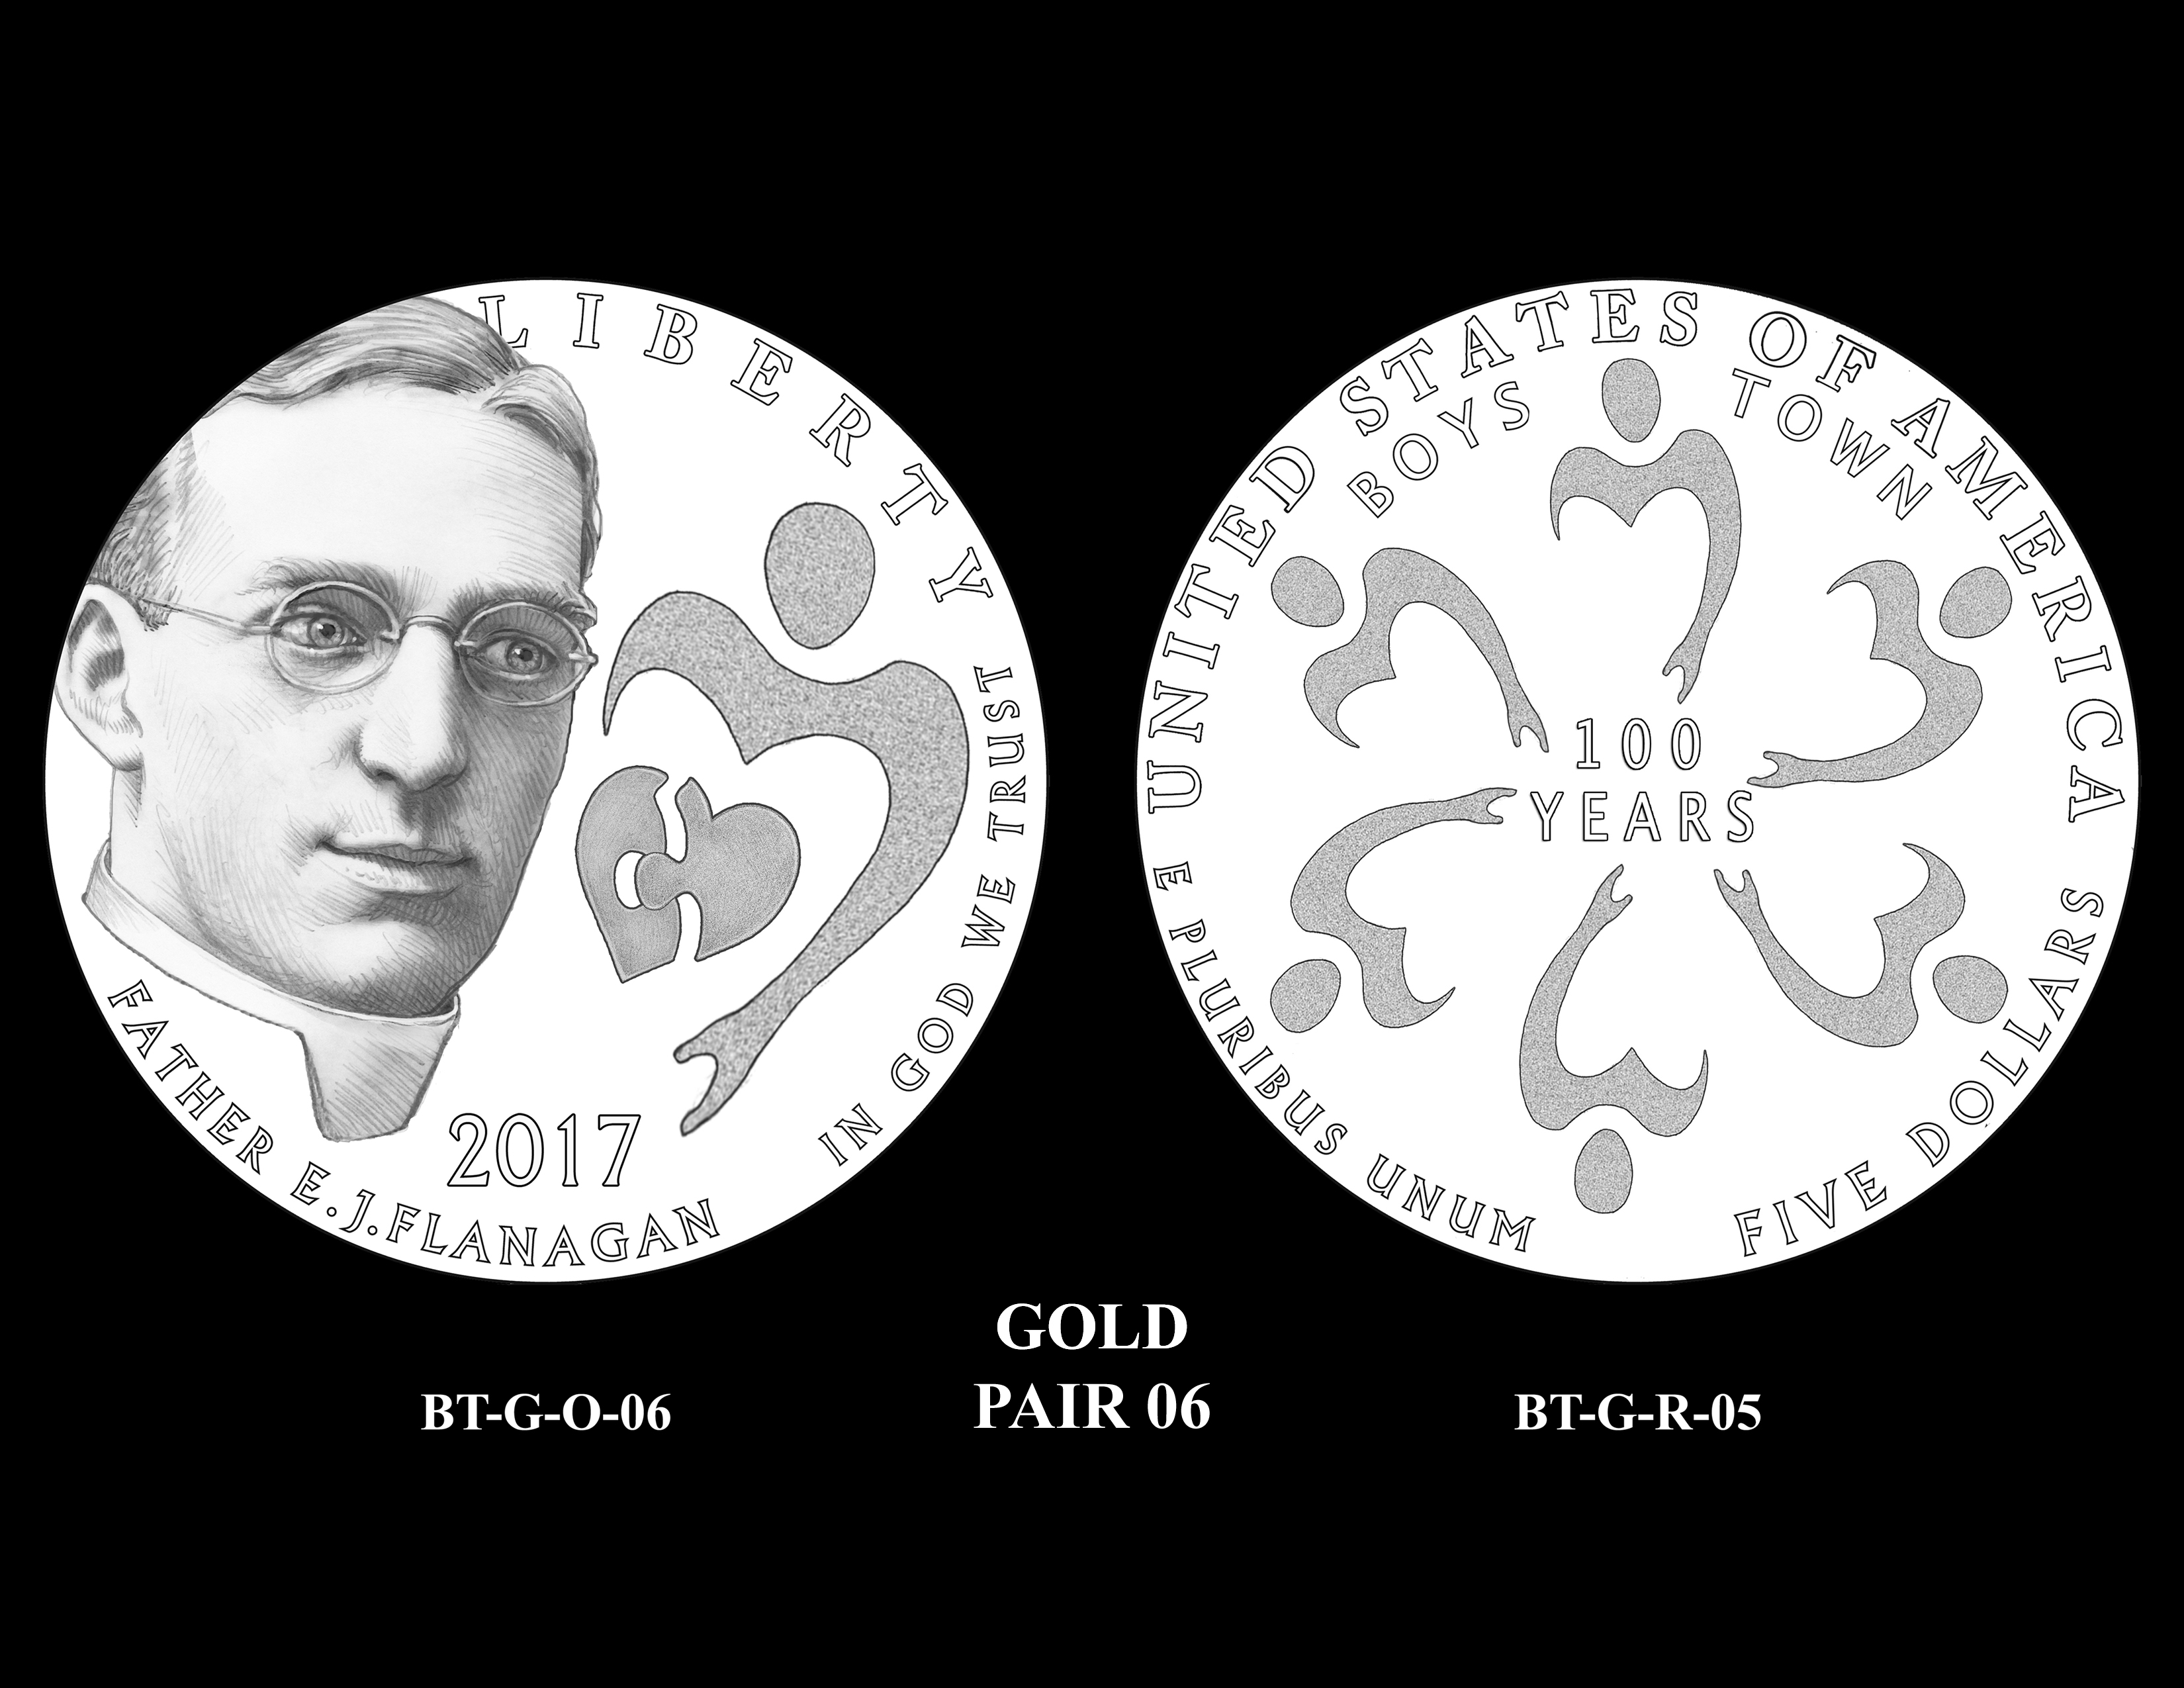 Gold-Pair-06 -- 2017 Boystown Centennial Commemorative Coin  Program